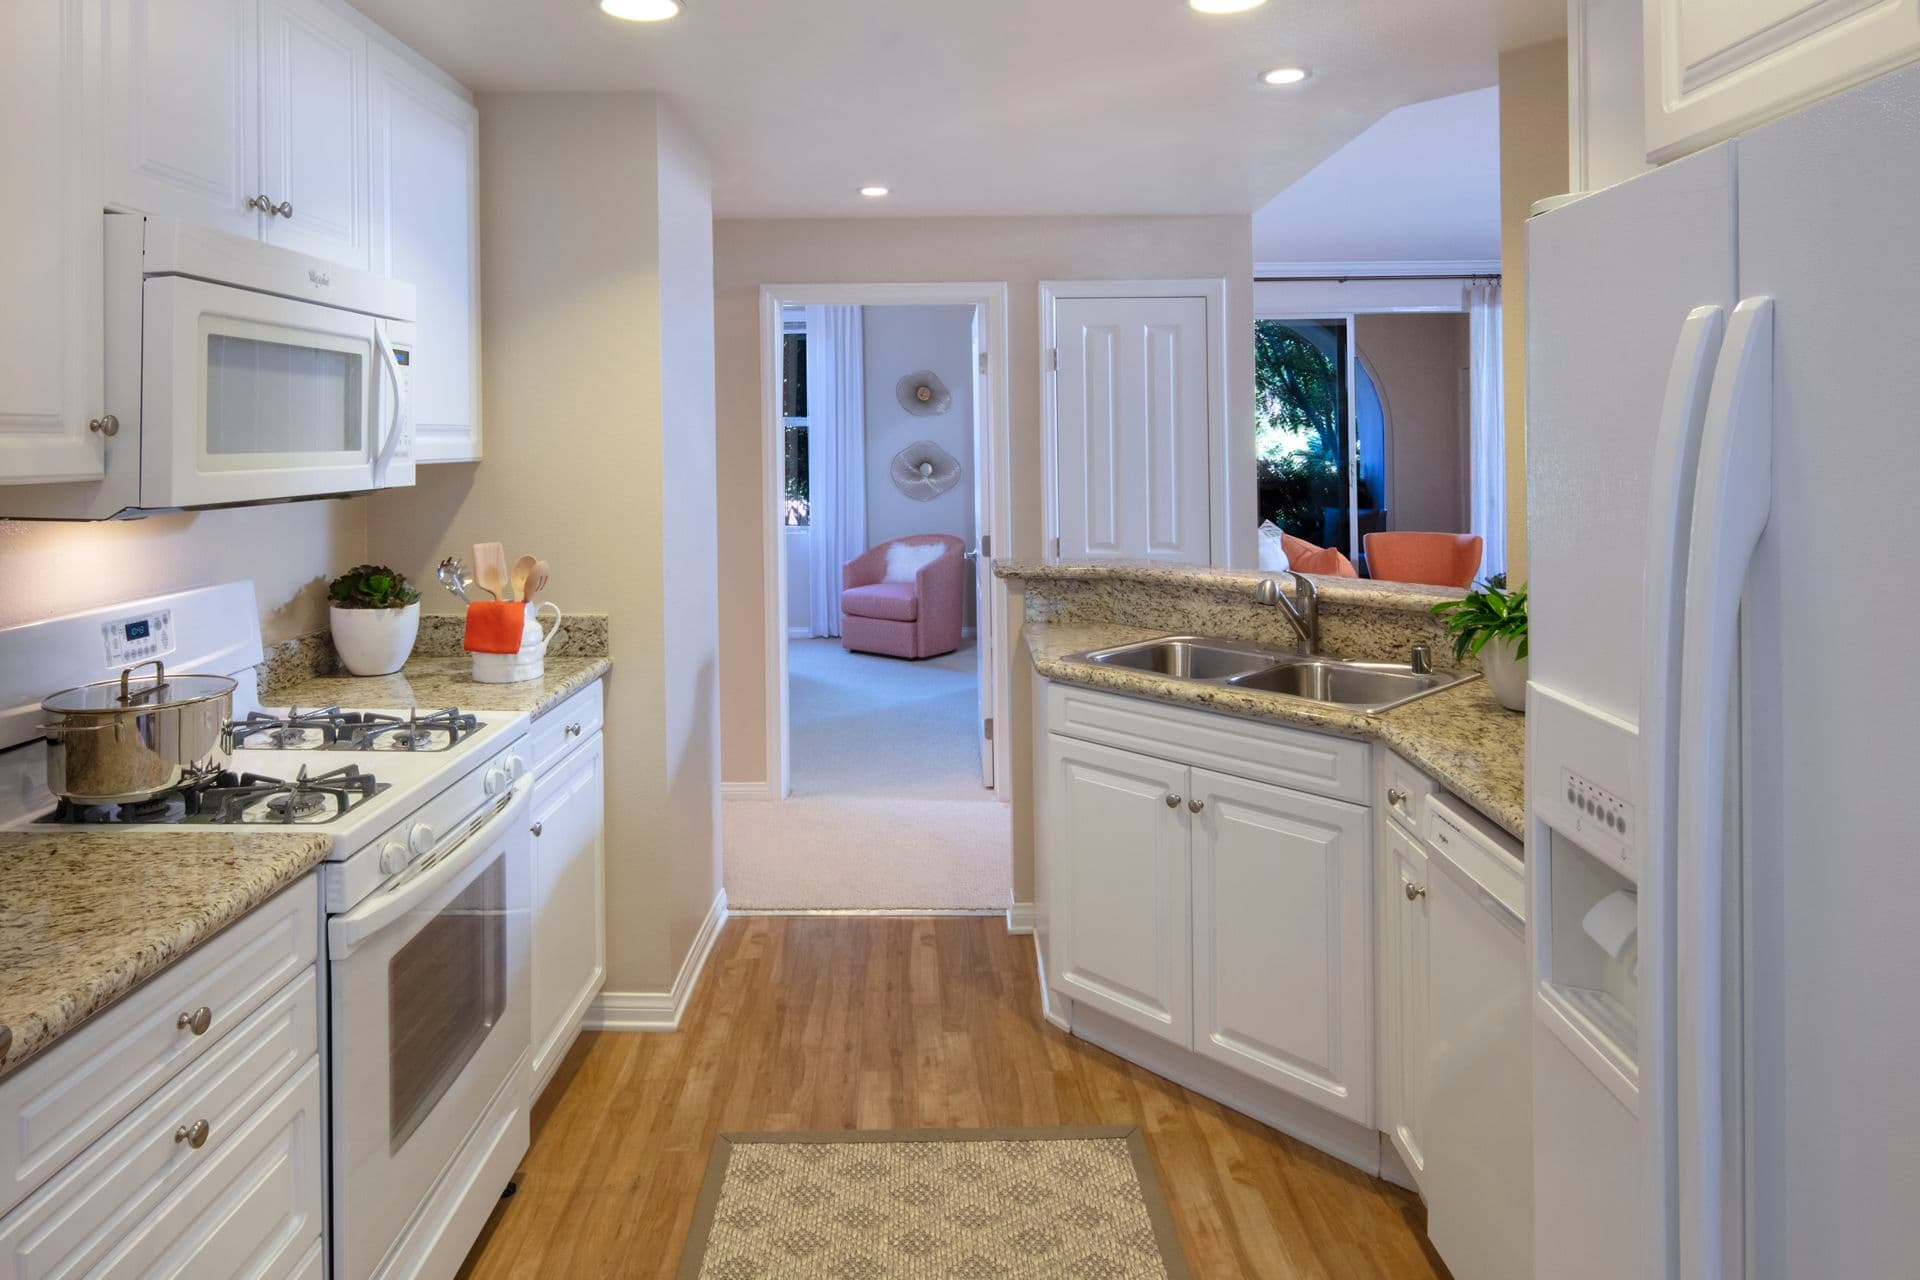 Interior view of kitchen at Portola Place Apartment Homes in Irvine, CA.